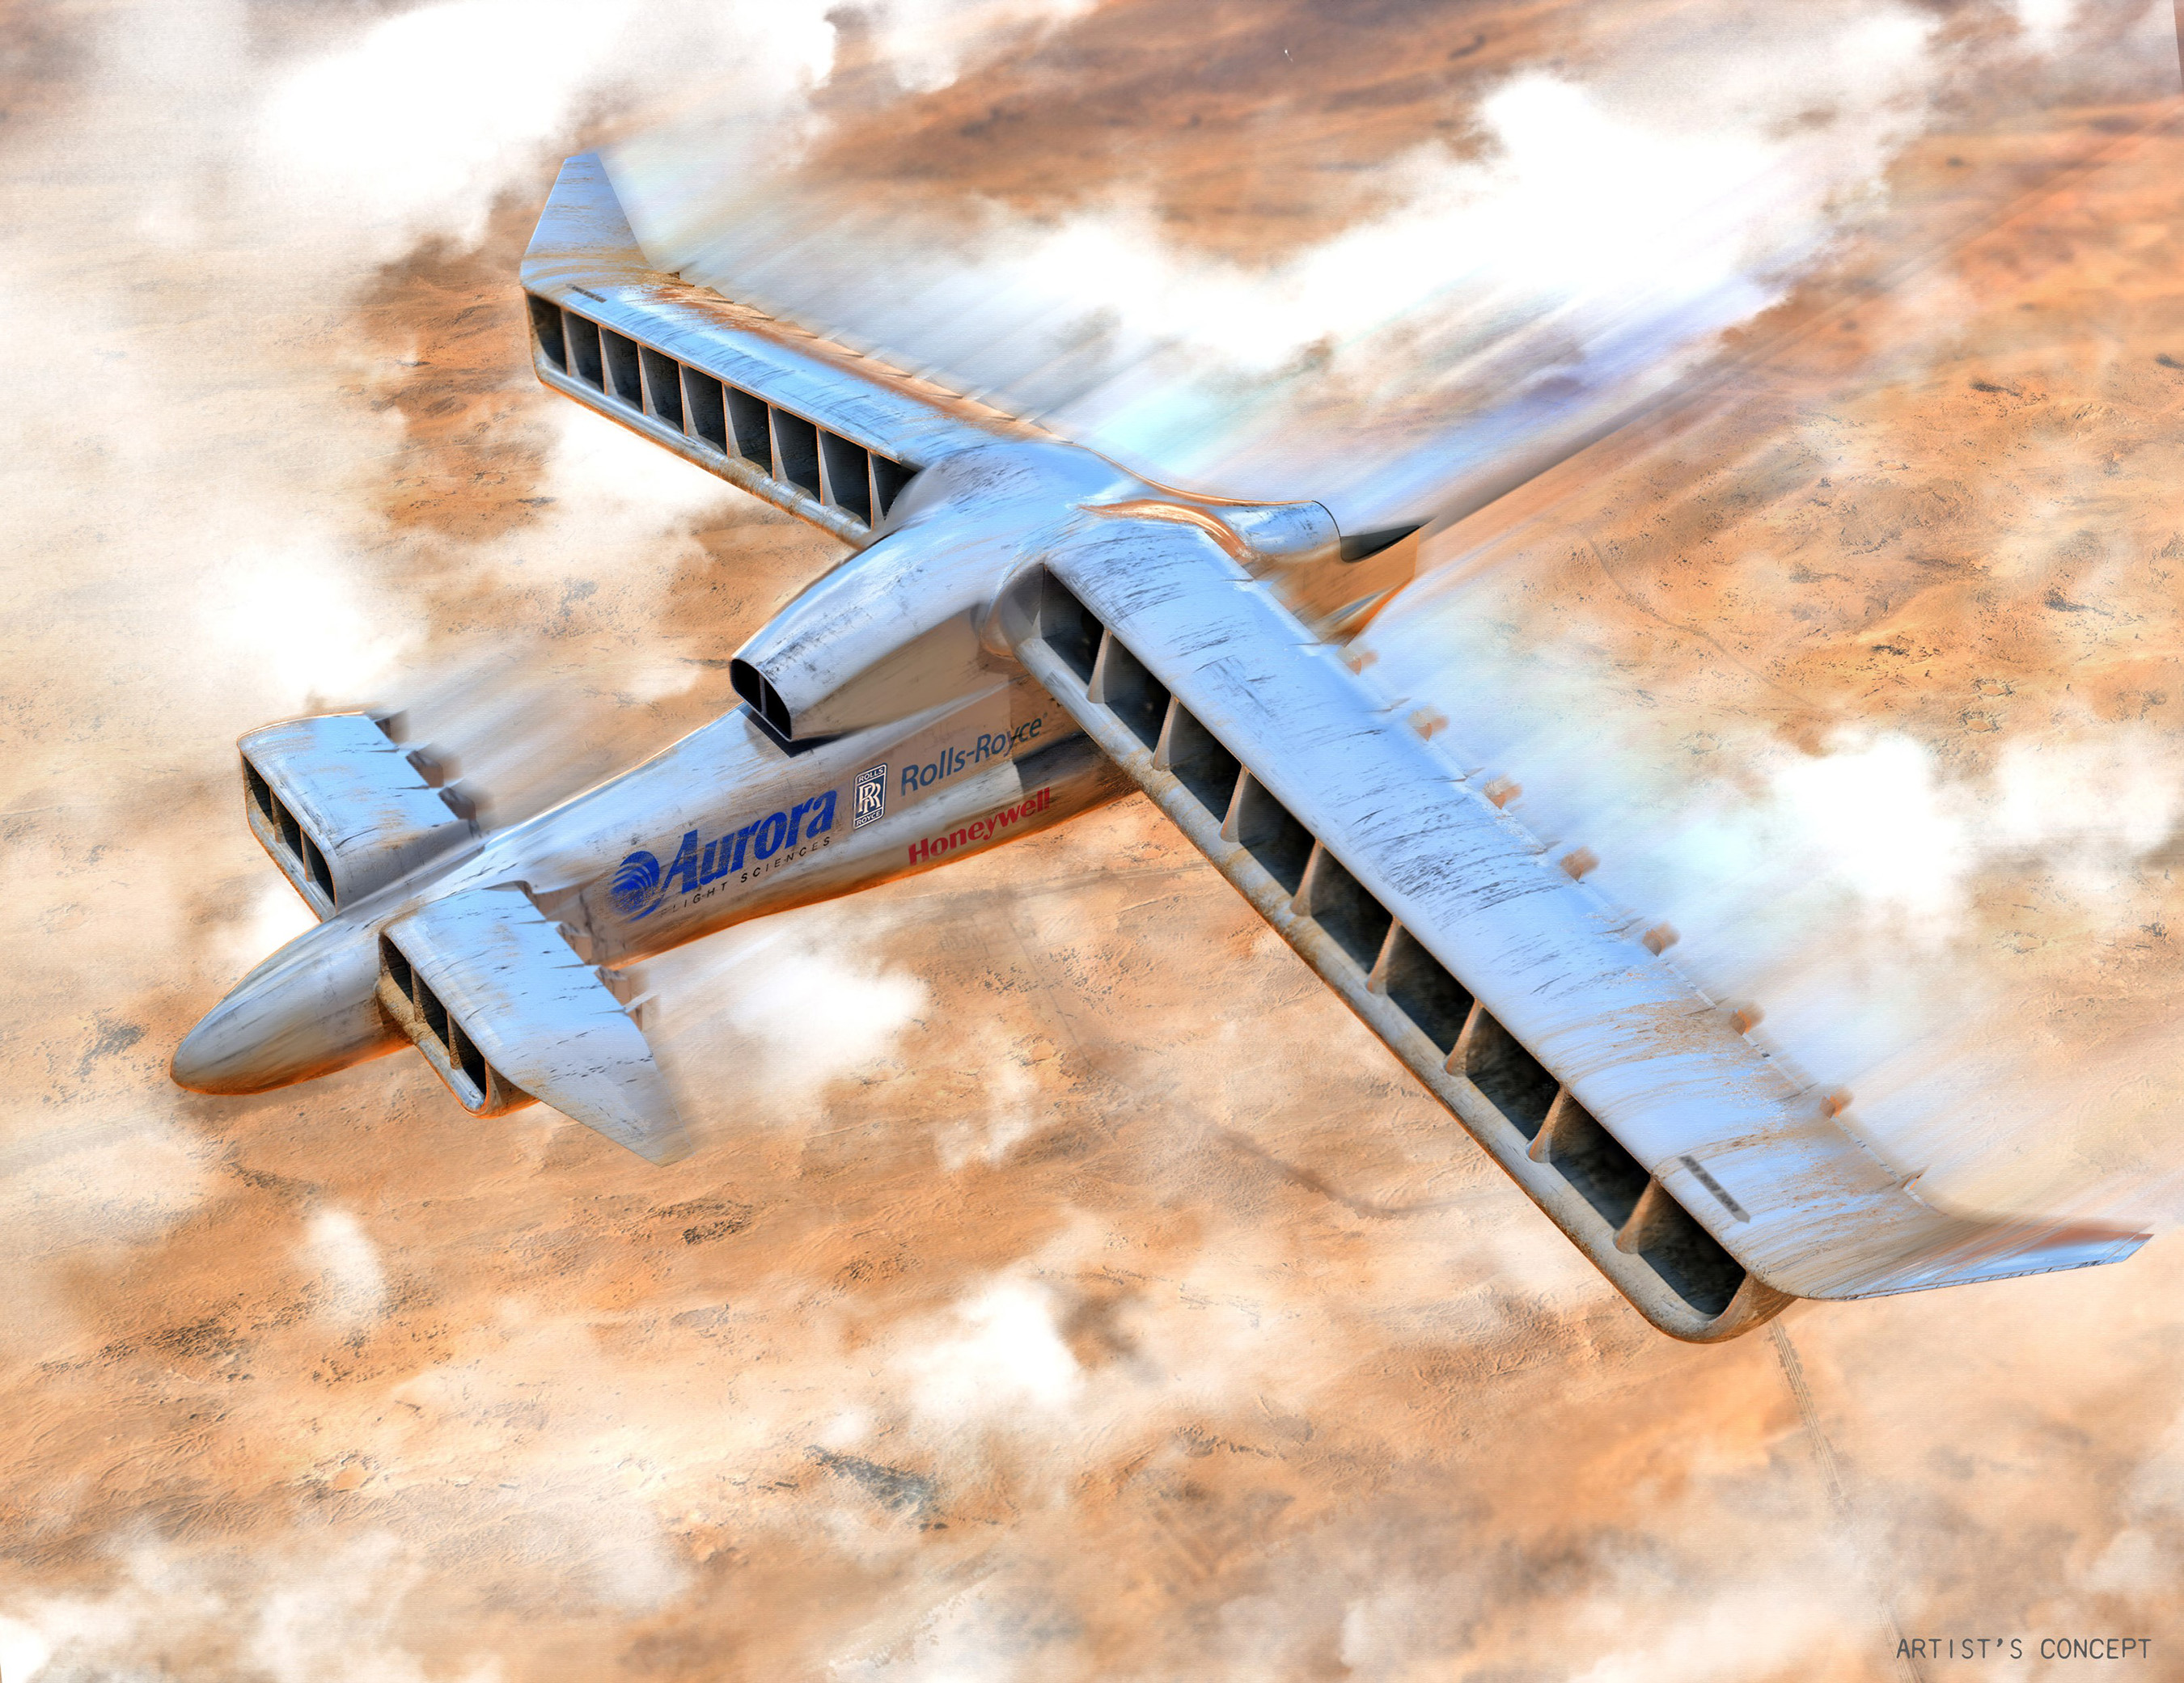 Aurora Flight Science's Vertical Take-Off and Landing Experimental Aircraft